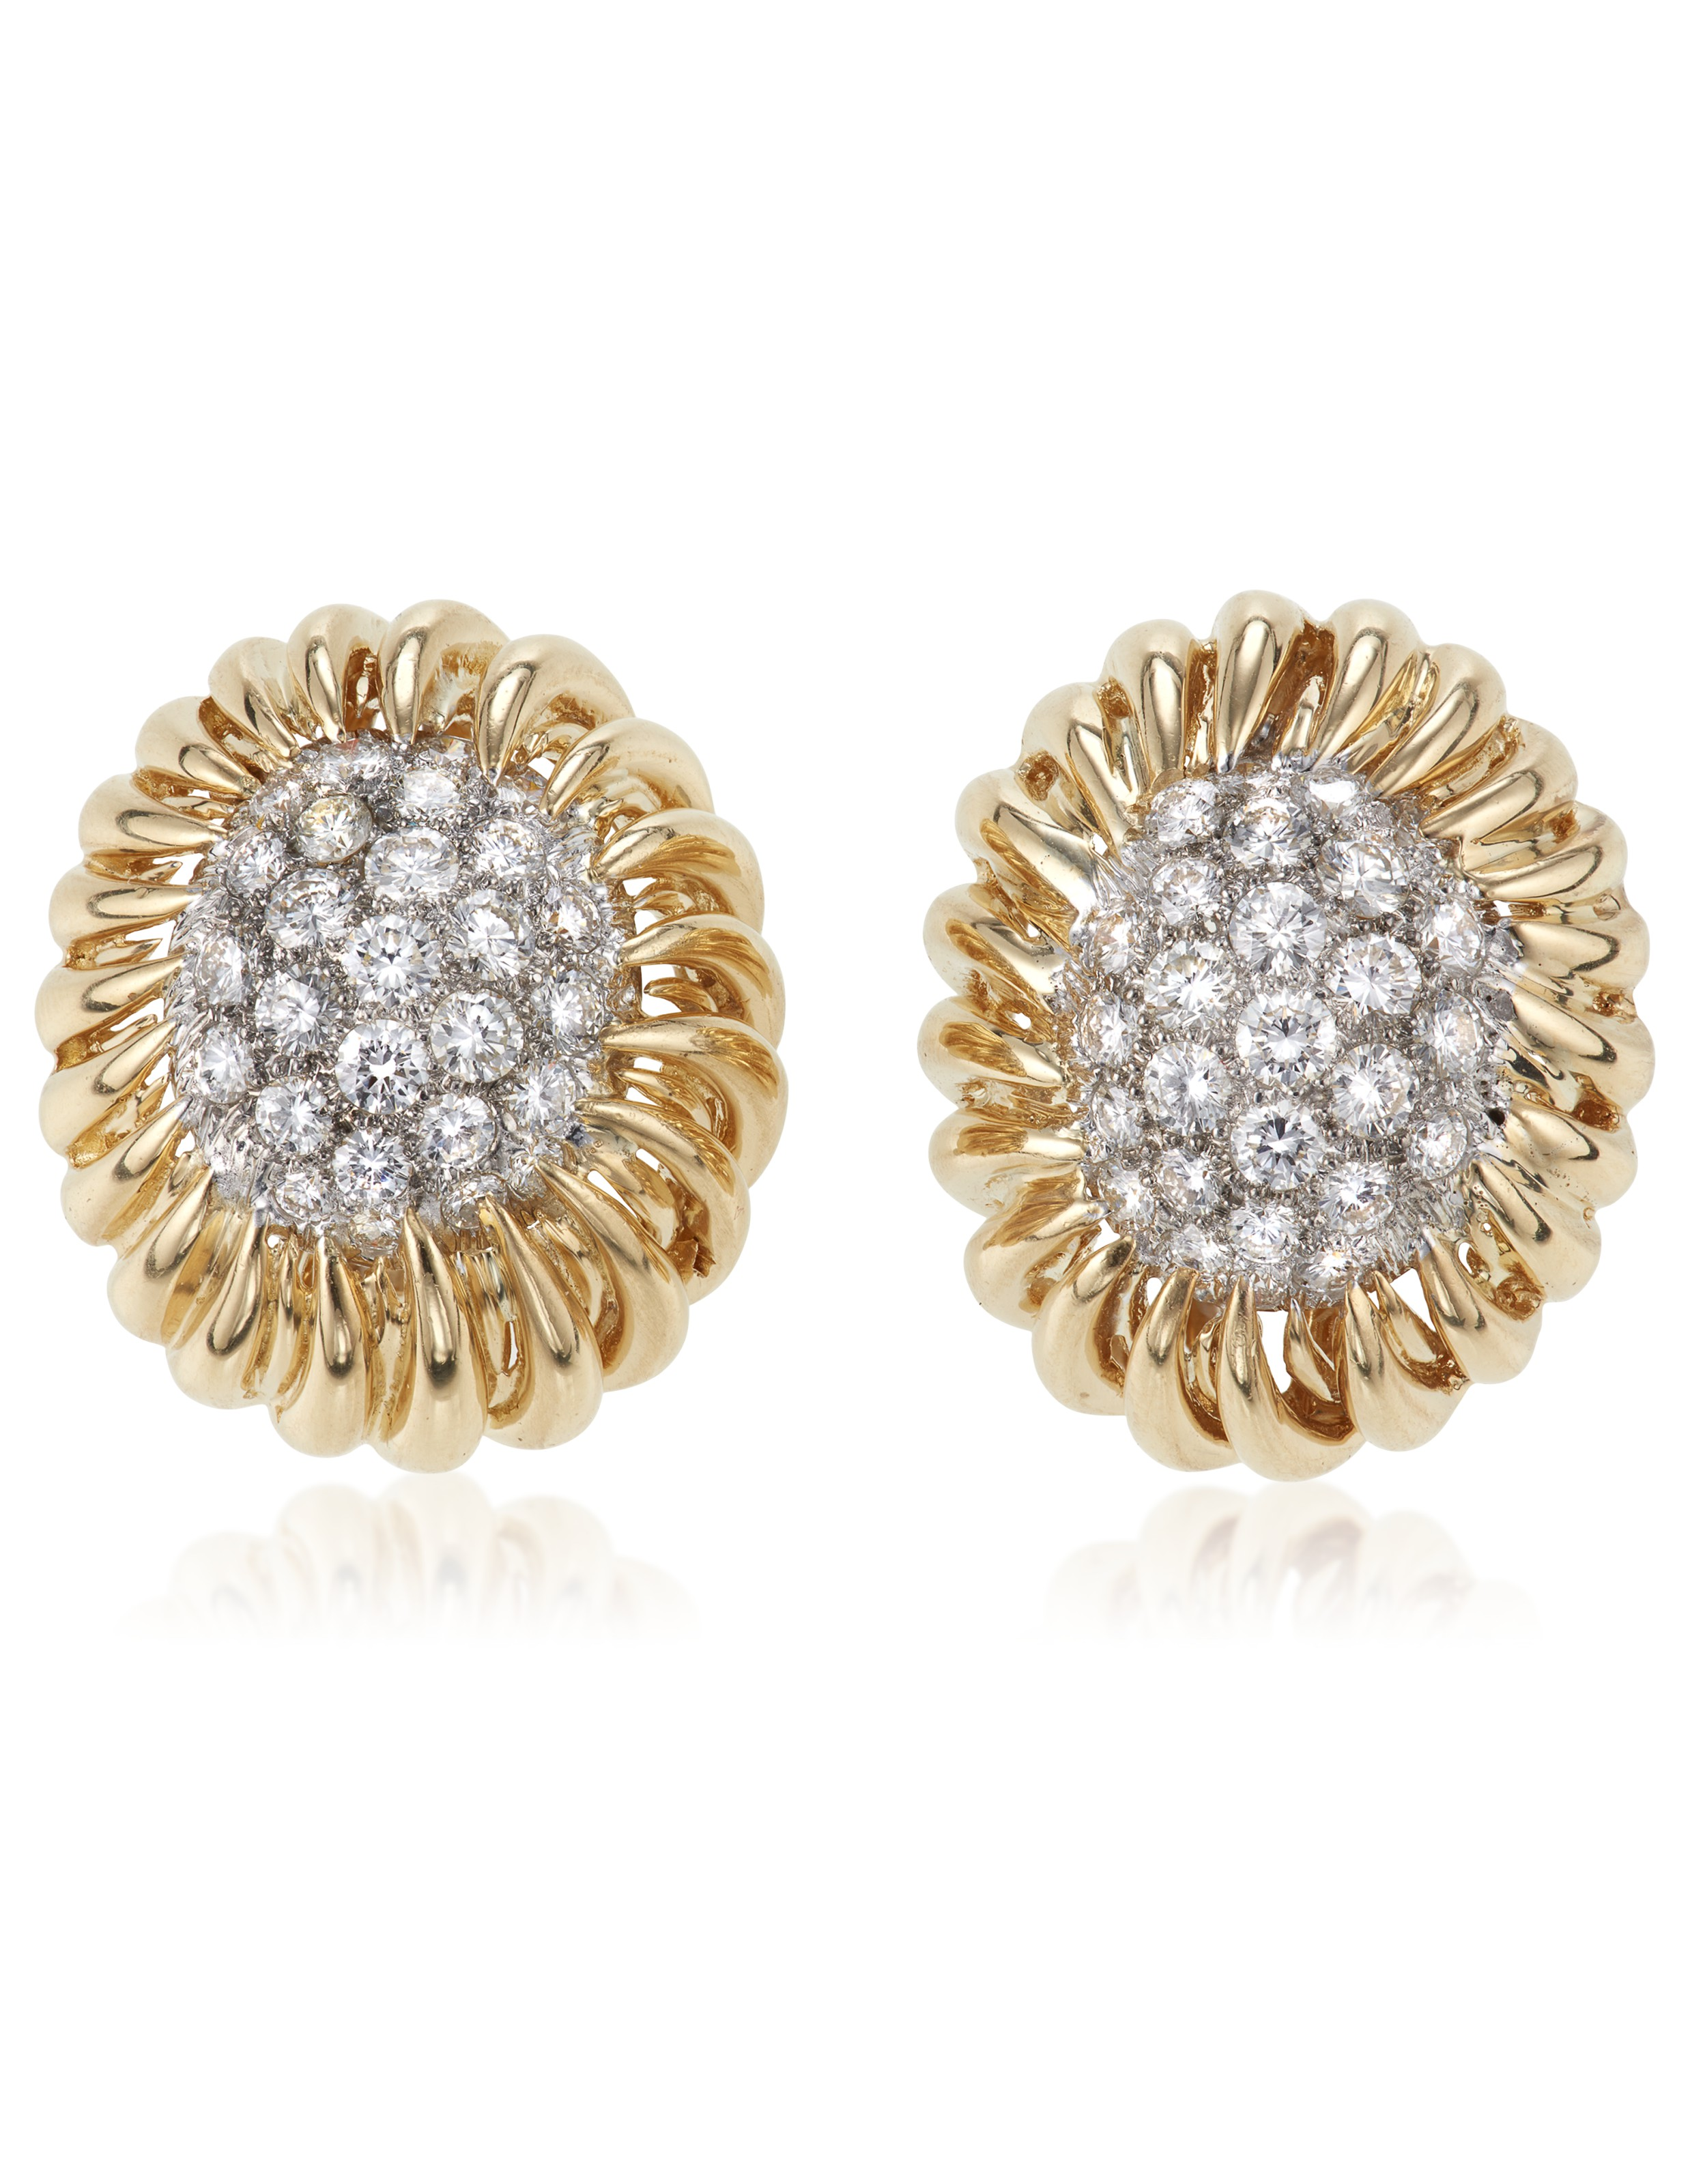 Gold and diamond earrings, by David Webb. Sold for $6,875 on10 February 2021, Online